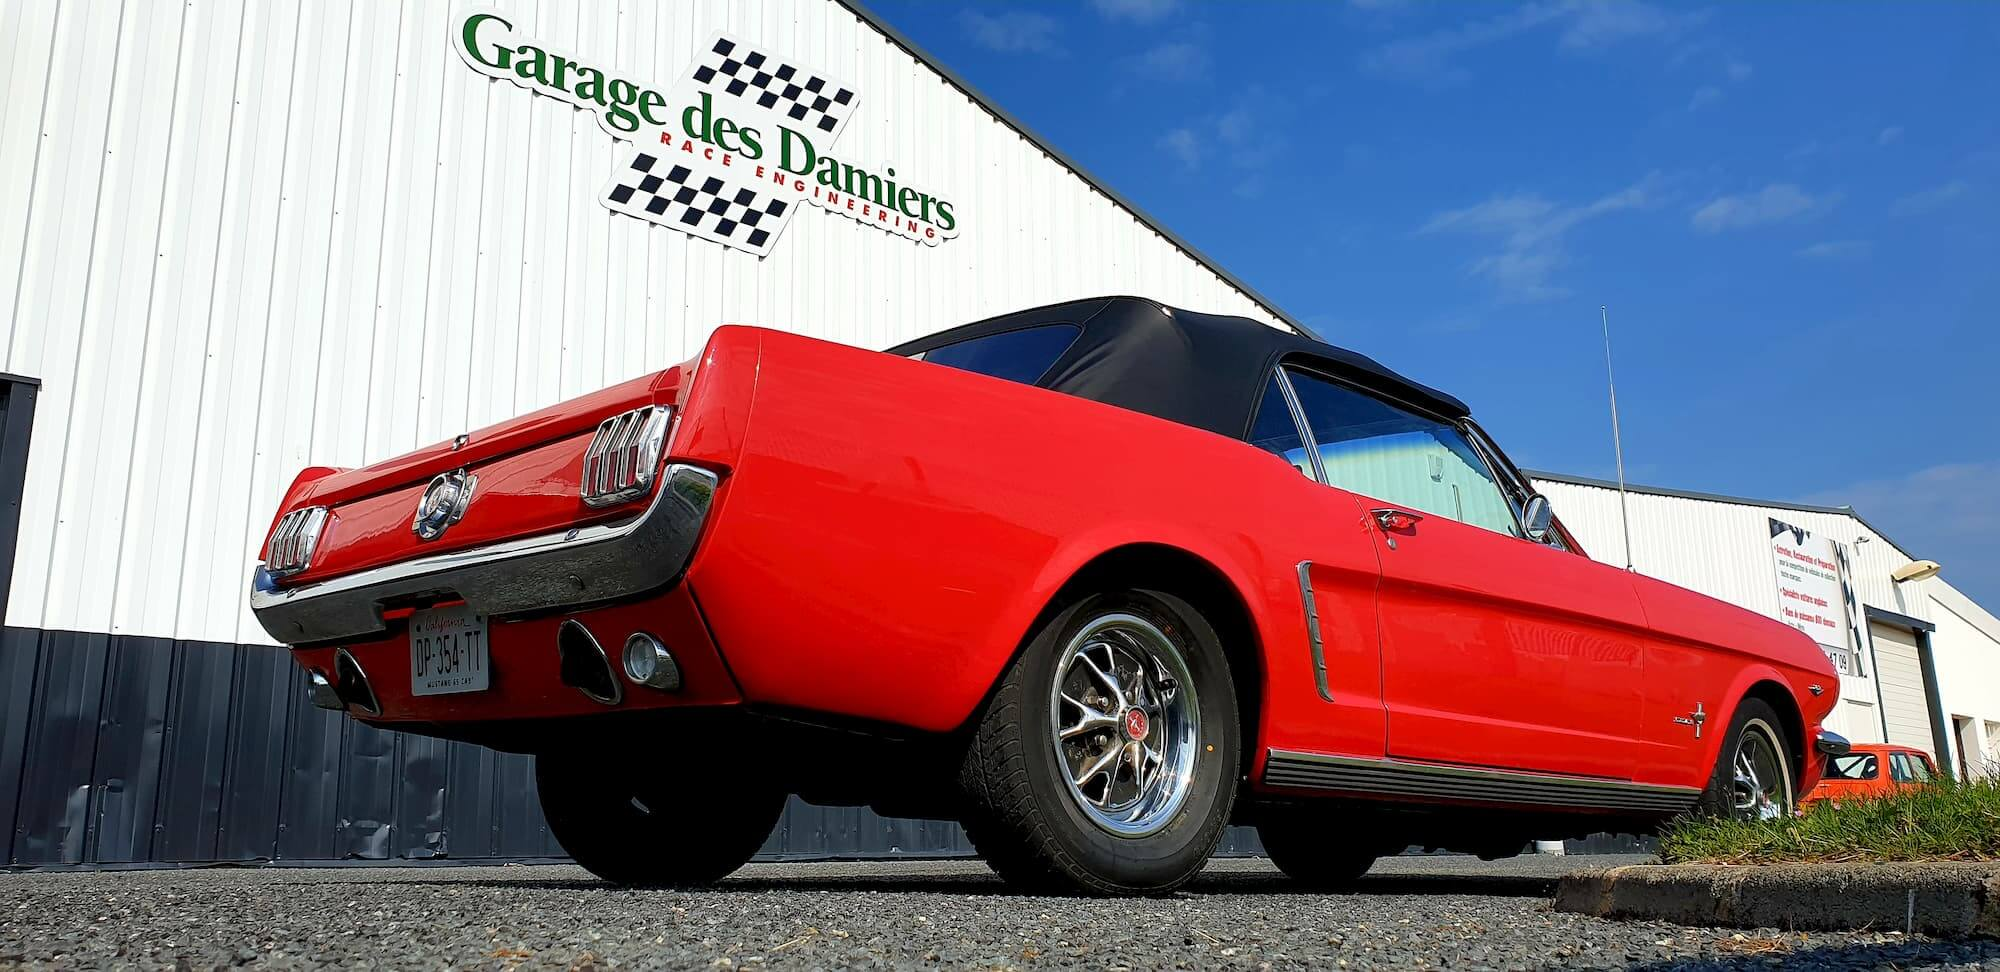 Muscle car - Ford Mustang Garage des Damiers - american cars